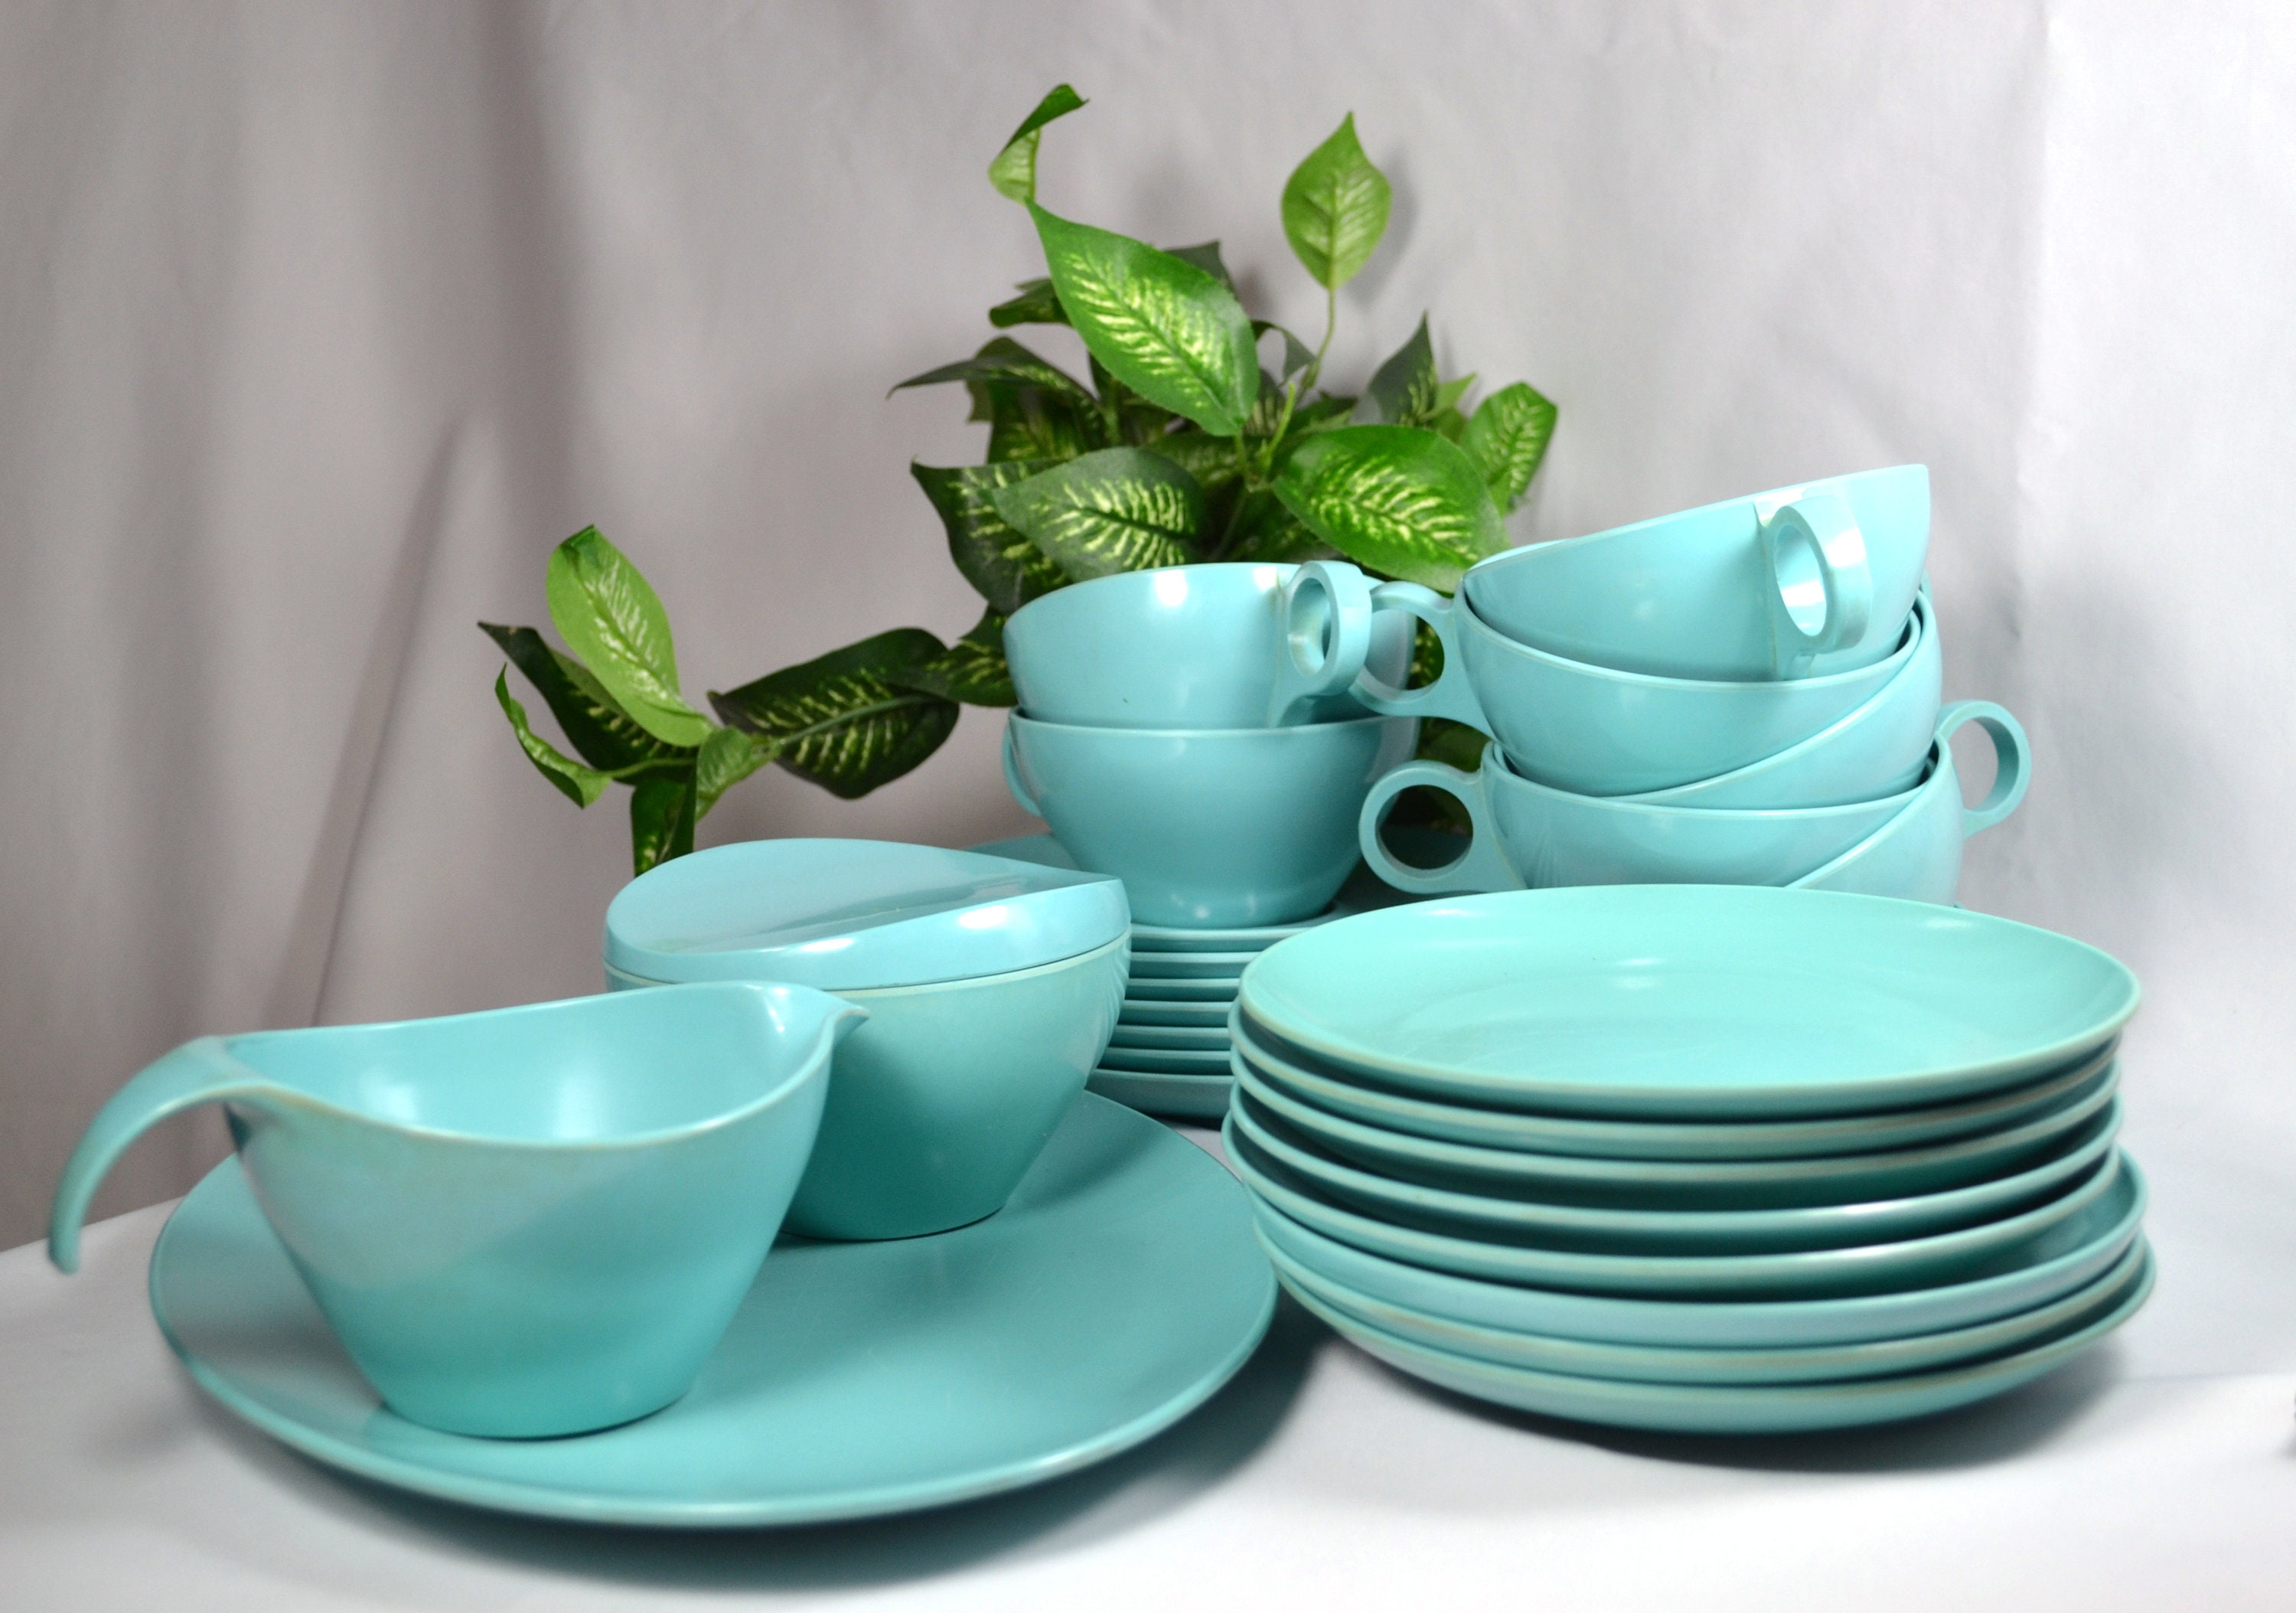 Vintage Melamine Dinnerware Set Turquoise Blue Snack Plates Coffee Cups and Saucers Sugar and Creamer Serving Platter & Vintage Melamine Dinnerware Set Turquoise Blue Snack Plates ...